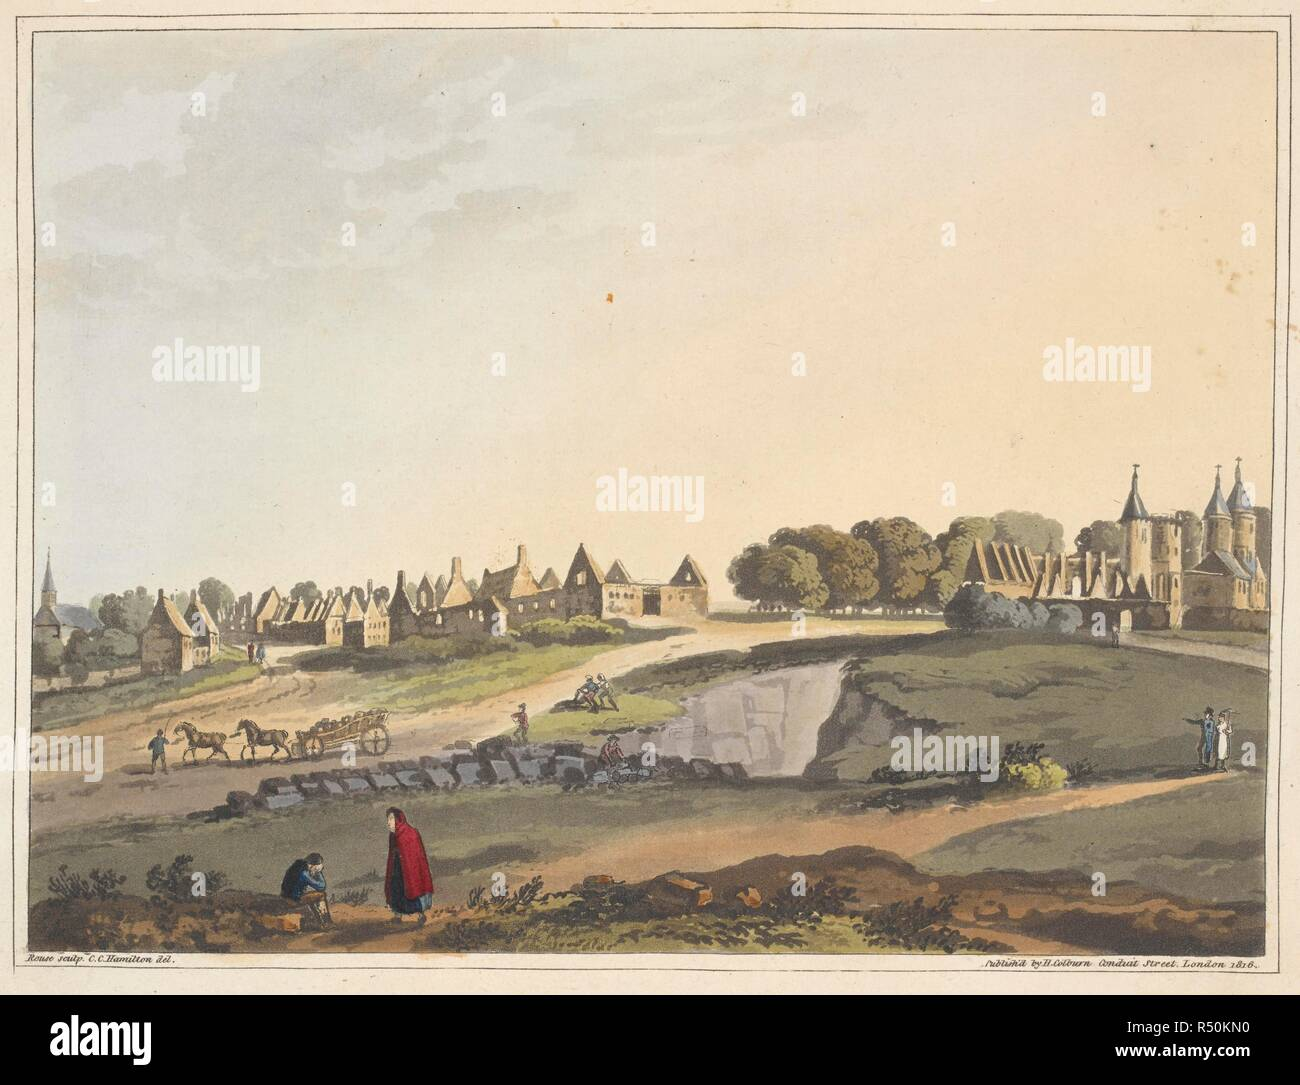 The ruins of the village of Ligny. An Historical Account of the Campaign in the Netherlands, in 1815, under His Grace the Duke of Wellington, and Marshal Prince Blucher, comprising the battles of Ligny, Quatrebras, and Waterloo; with a detailed narrative of the political events connected with those memorable conflicts down to the surrender of Paris, and the departure of Bonaparte for St. Helena ... Embellished with ... plates ... from drawings ... by James Rouse. London : Henry Colburn, 1817. Source: 193.e.9 plate XXIV - W. Author: JAMES ROUSE. Mudford, William. - Stock Image